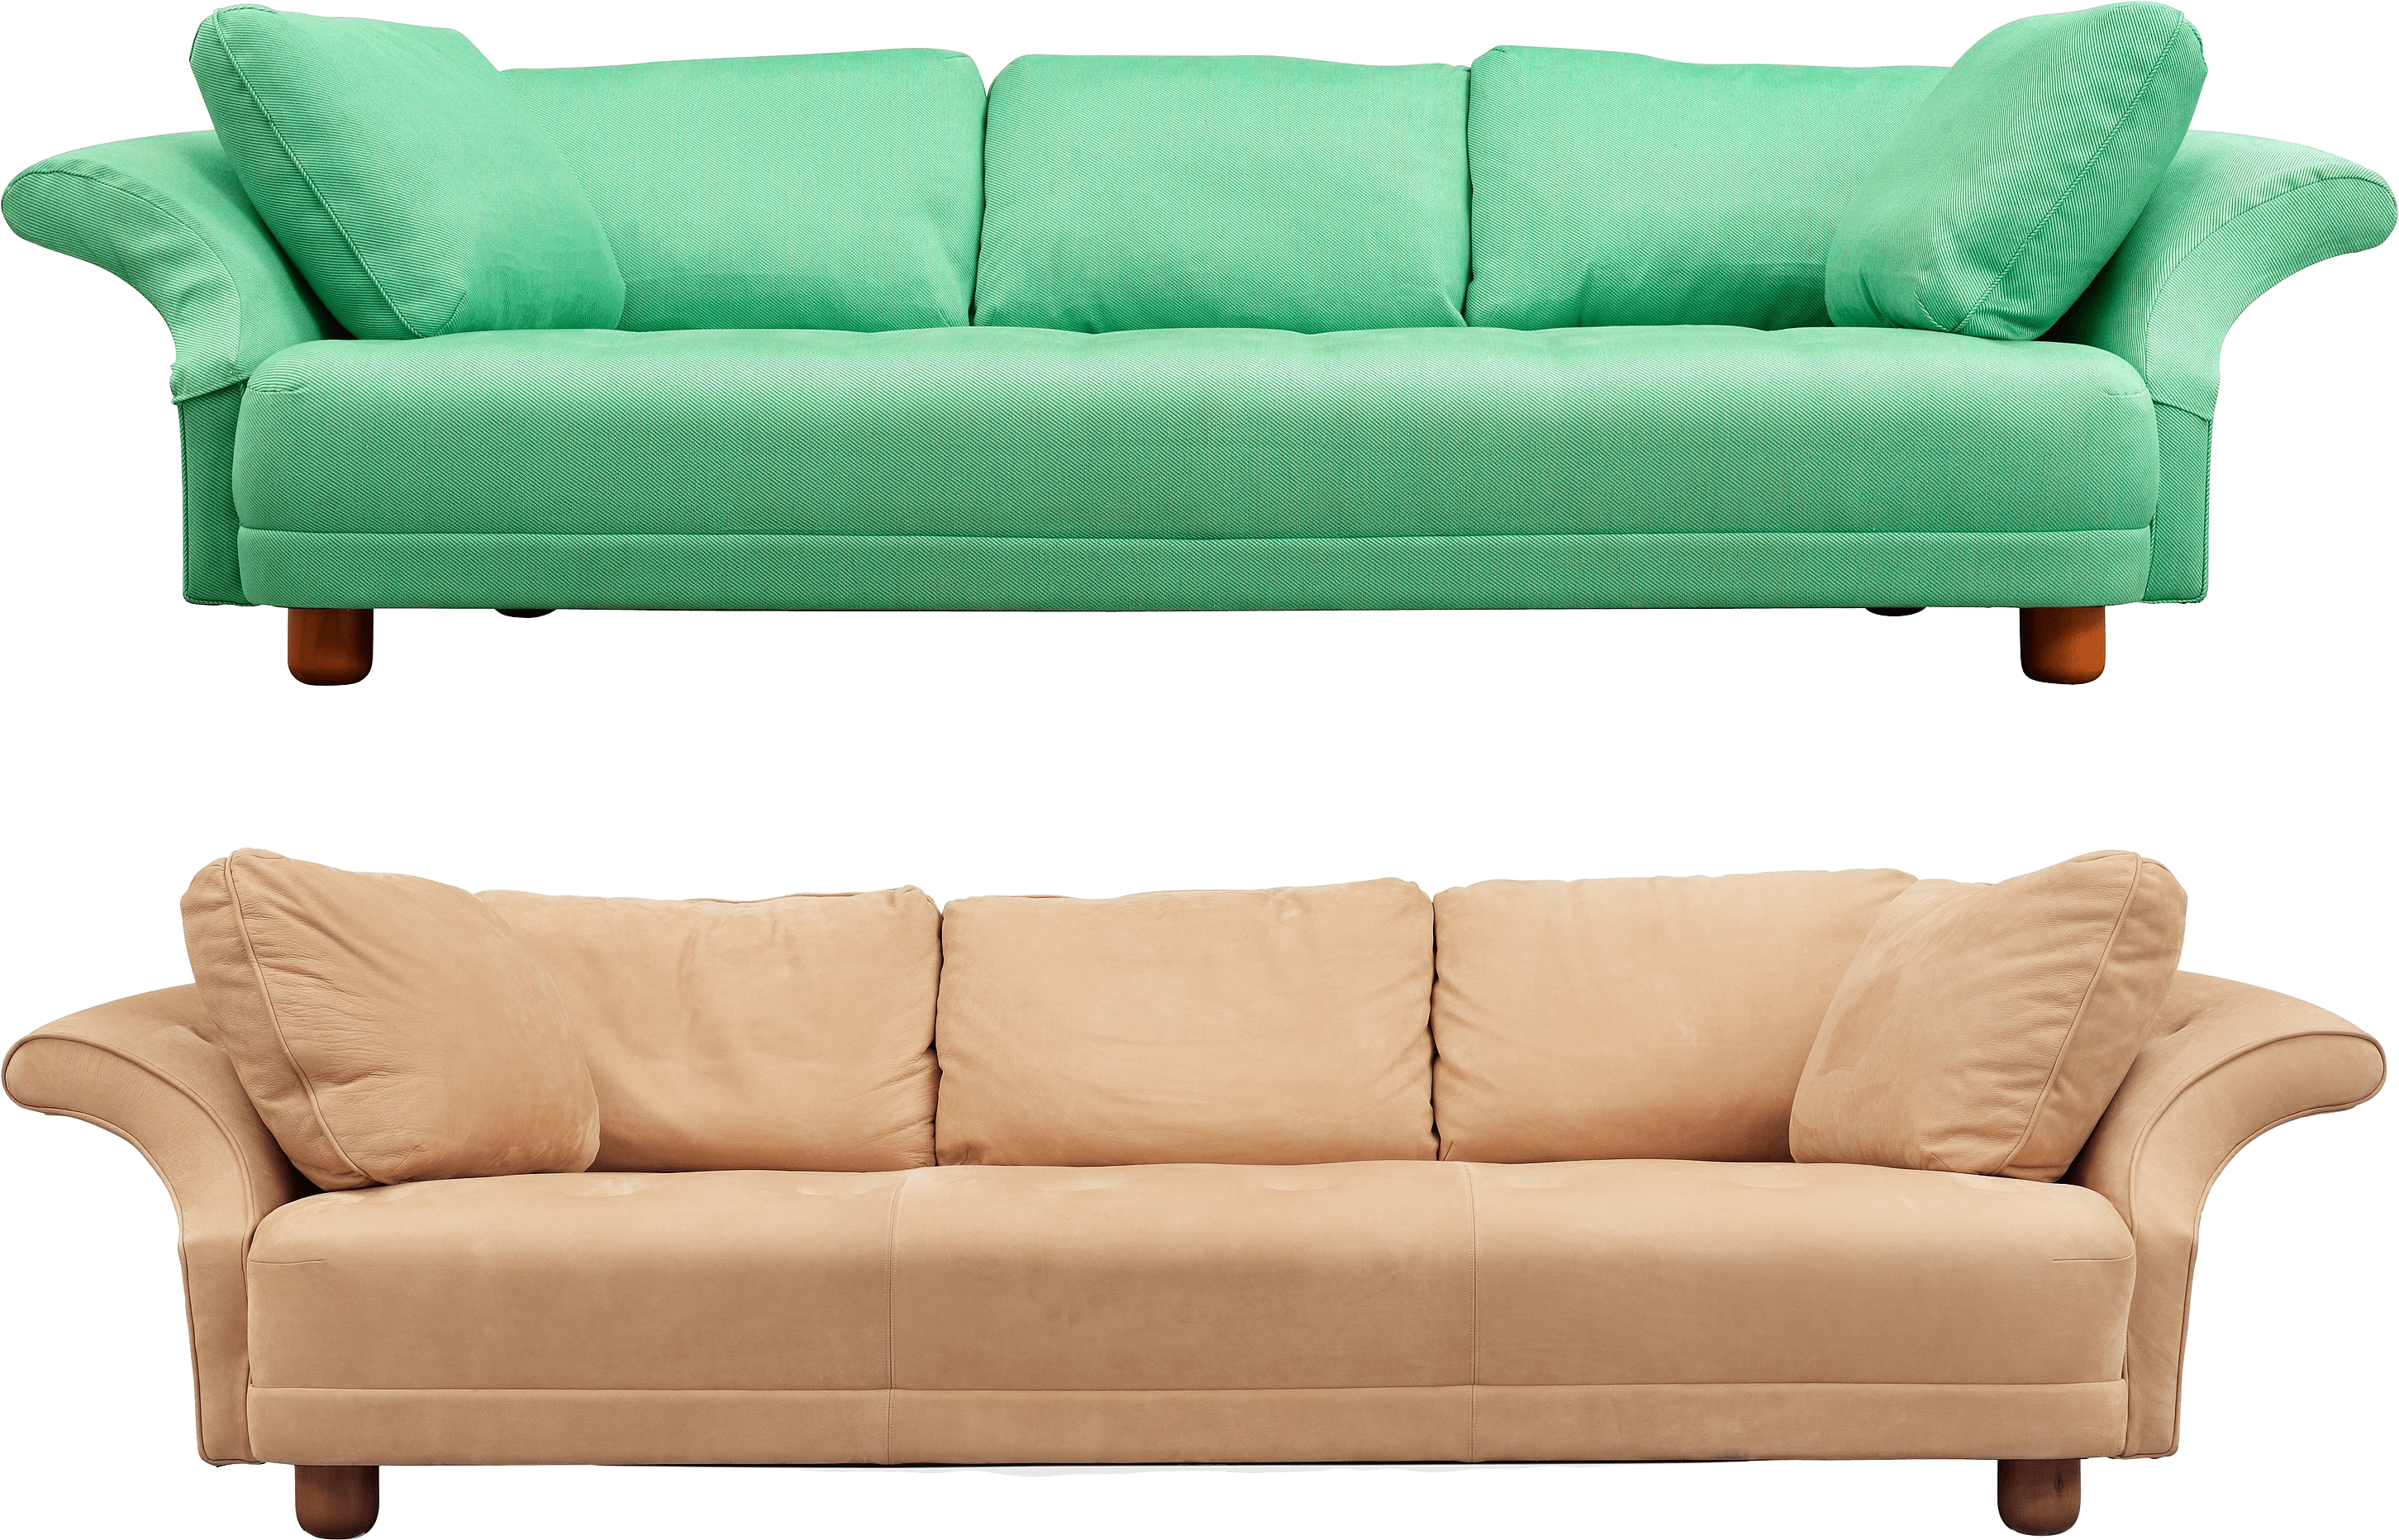 sofa set png images large brown leather bed Диван фото